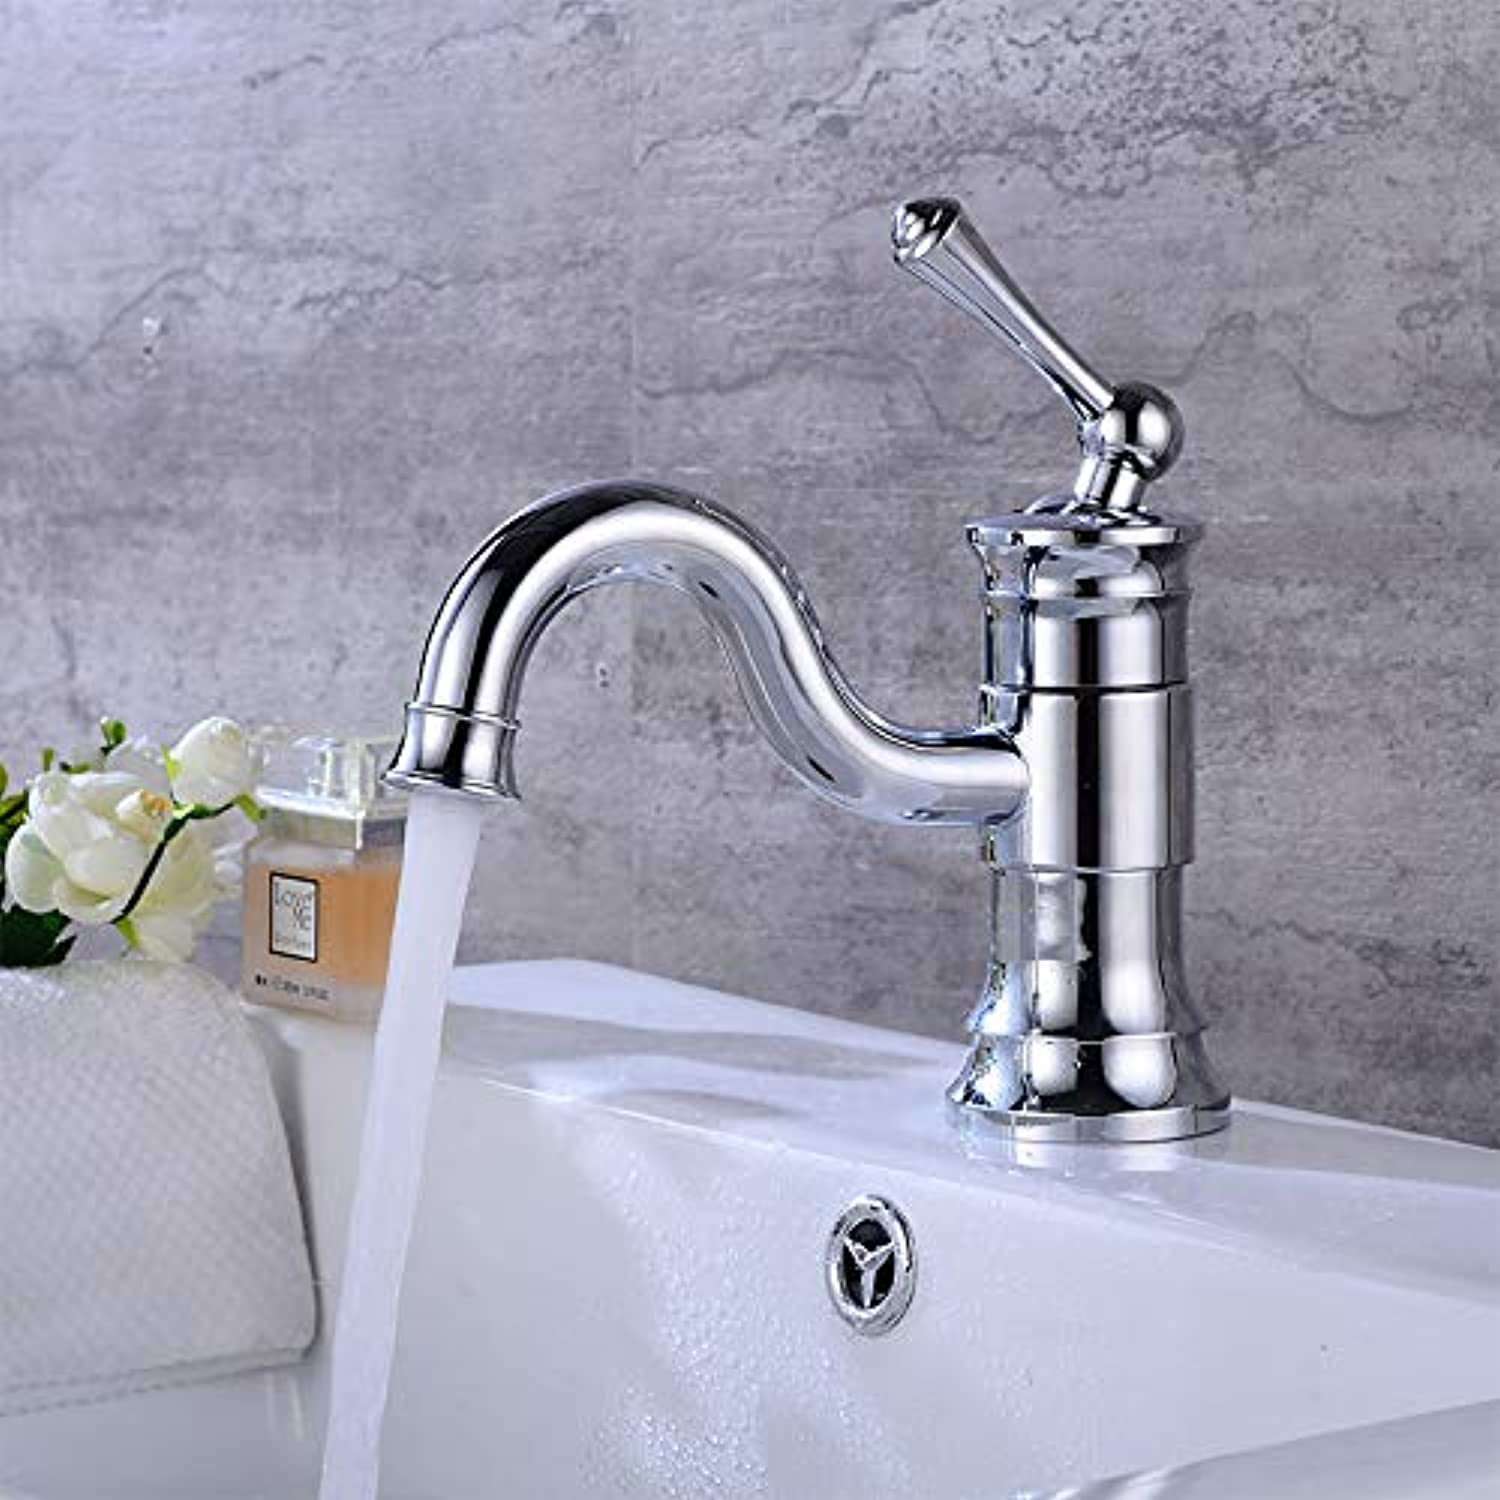 Faucet Taps Above Counter Basin Hot And Cold Water Faucet Household Washbasin Basin Single Handle Single Hole Copper Universal redary Faucet, Basin Dwarf